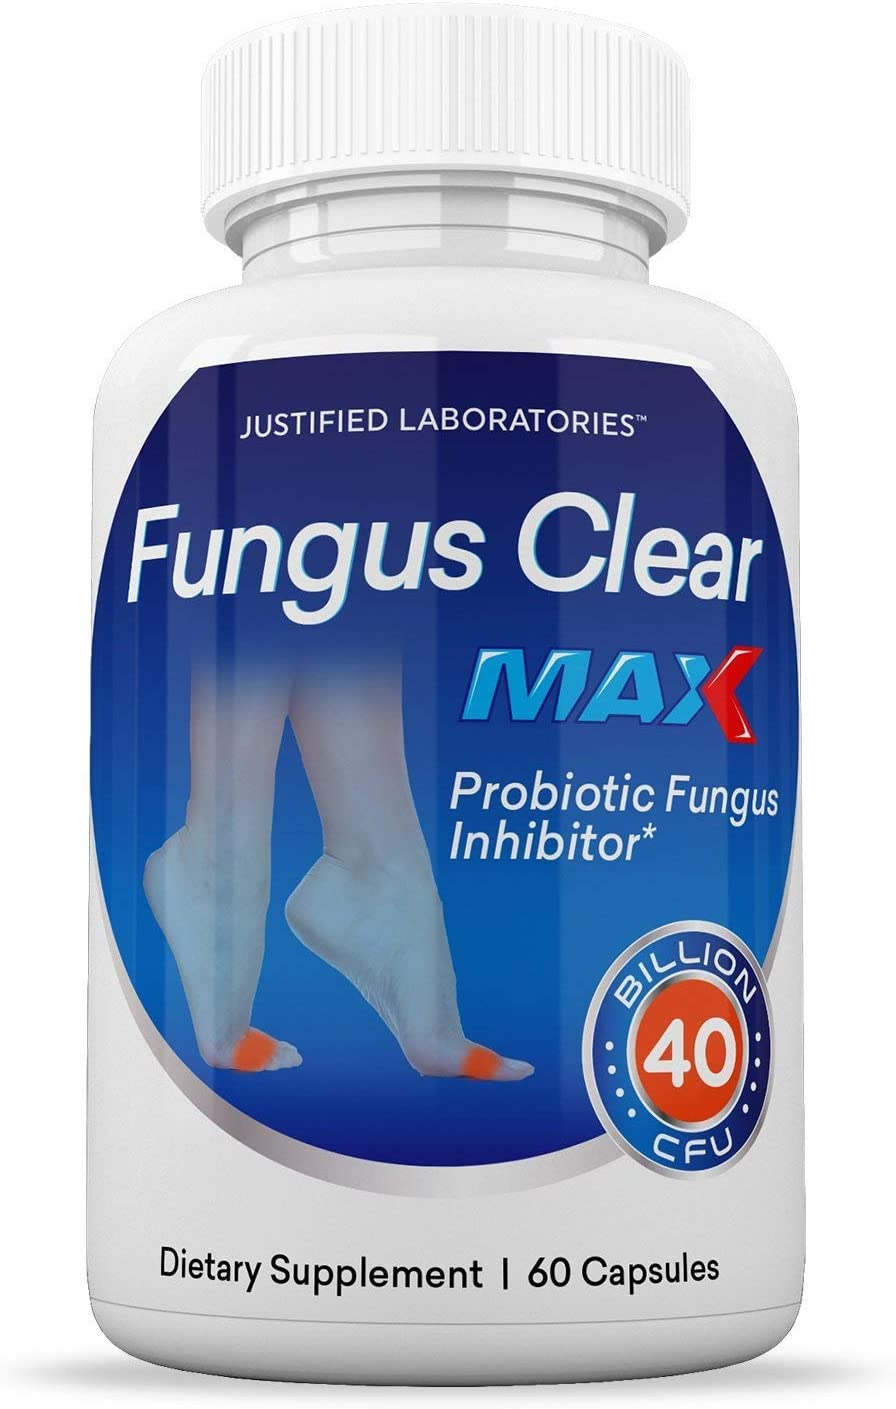 Fungus Clear Max Pills 40 Special Campaign Billion Probiotic CFU Arlington Mall Supports Strong